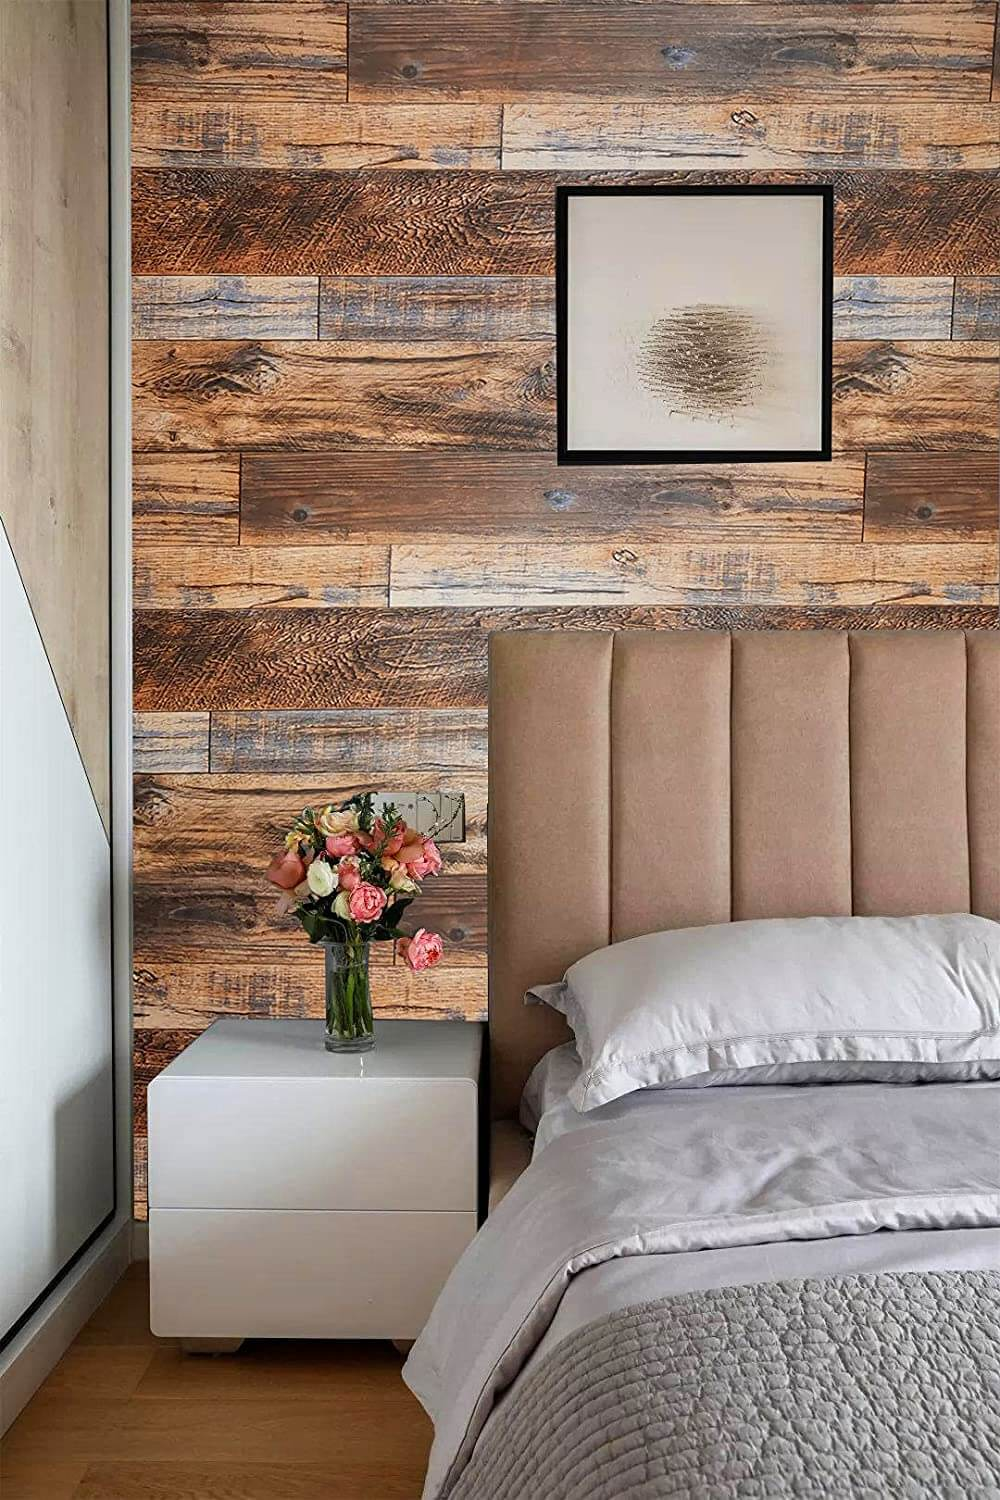 Rustic Faux Wood Peel and Stick Wall